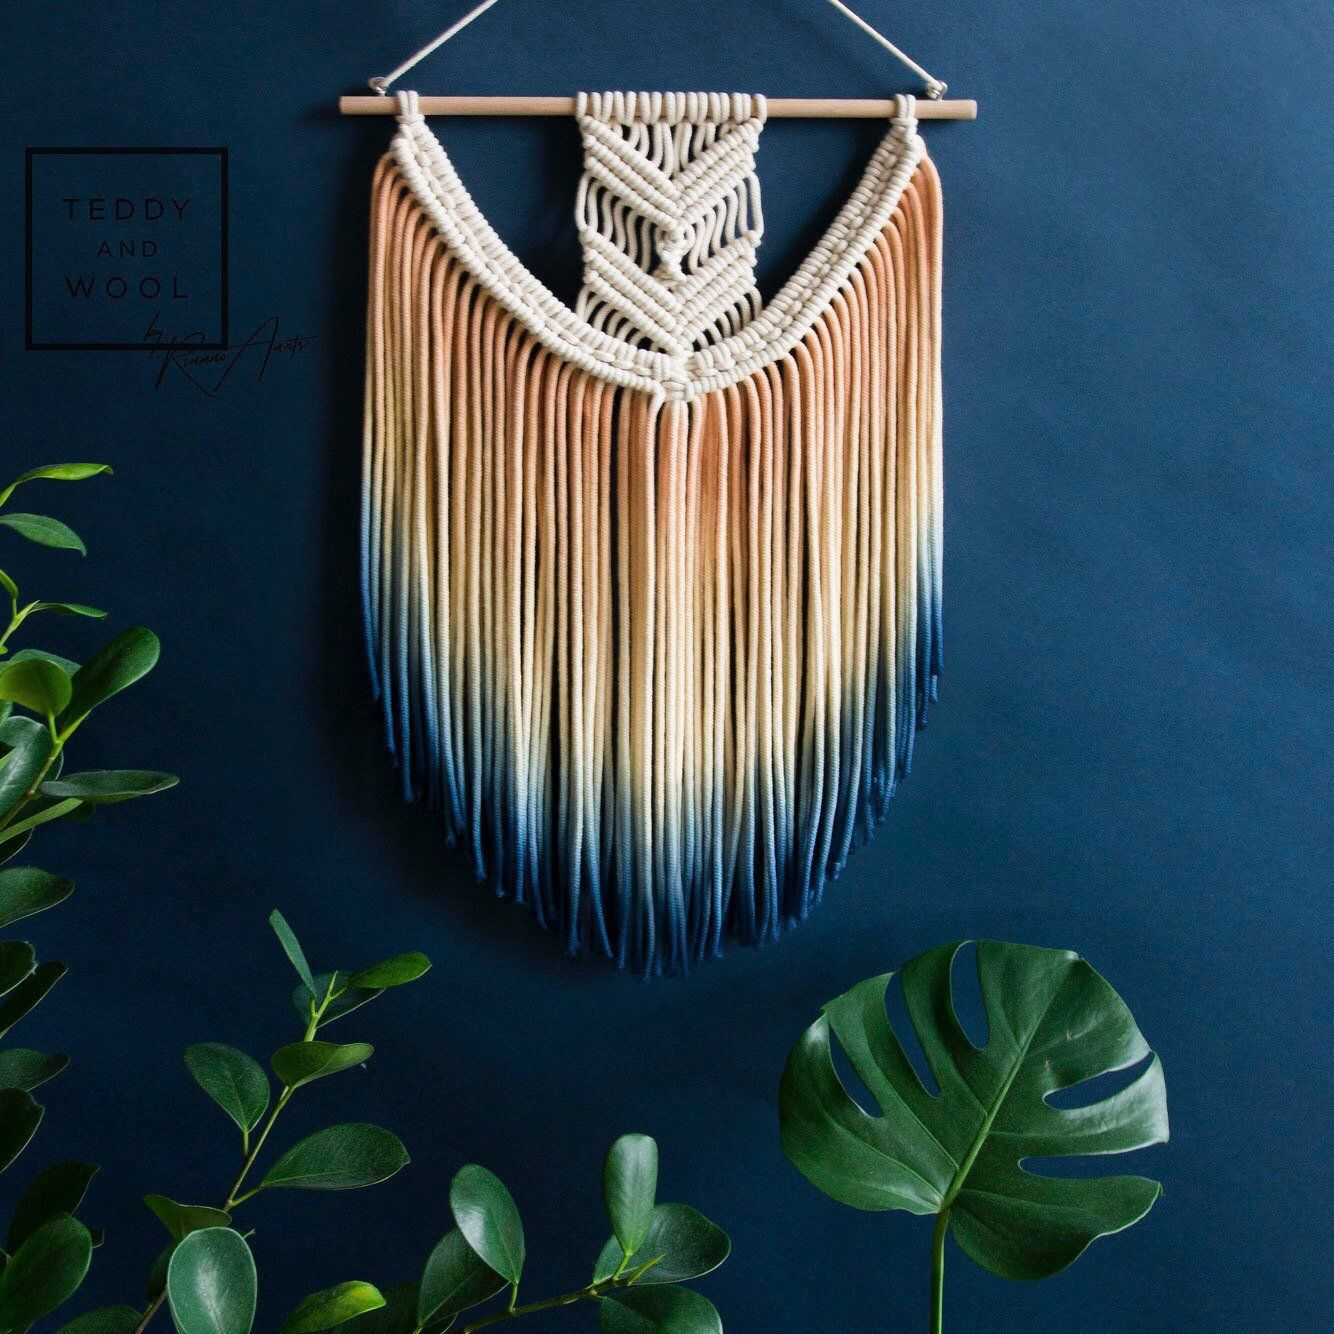 Stunning Large Macrame Wall Hanging Available In Different Etsy Makramee Vorhang Makramee Wandbehang Wandbehang - Vorhang Artikel